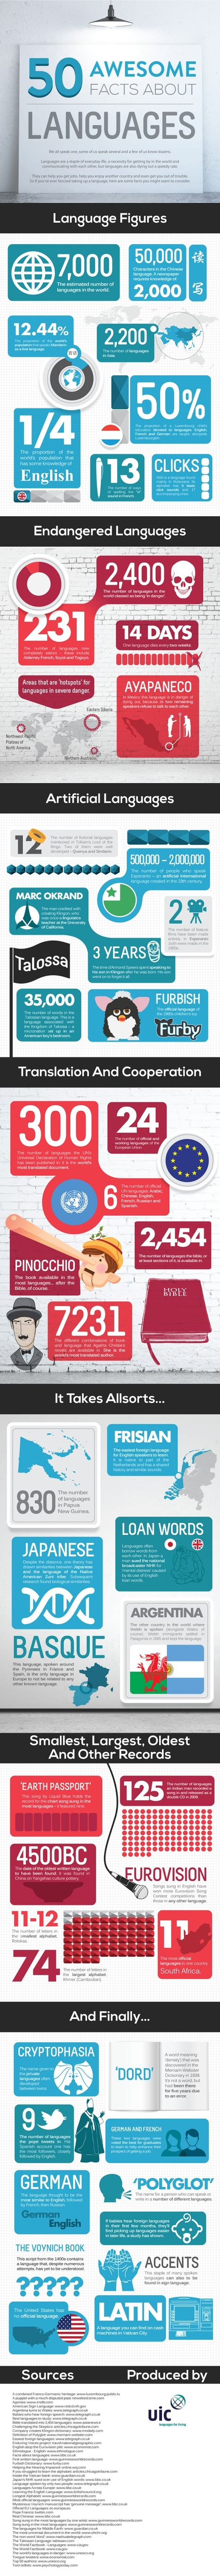 50 awesome facts about LANGUAGES | INFOGRAPHIC | EFL-ESL, ELT, Education | Language - Learning - Teaching - Educating | Scoop.it